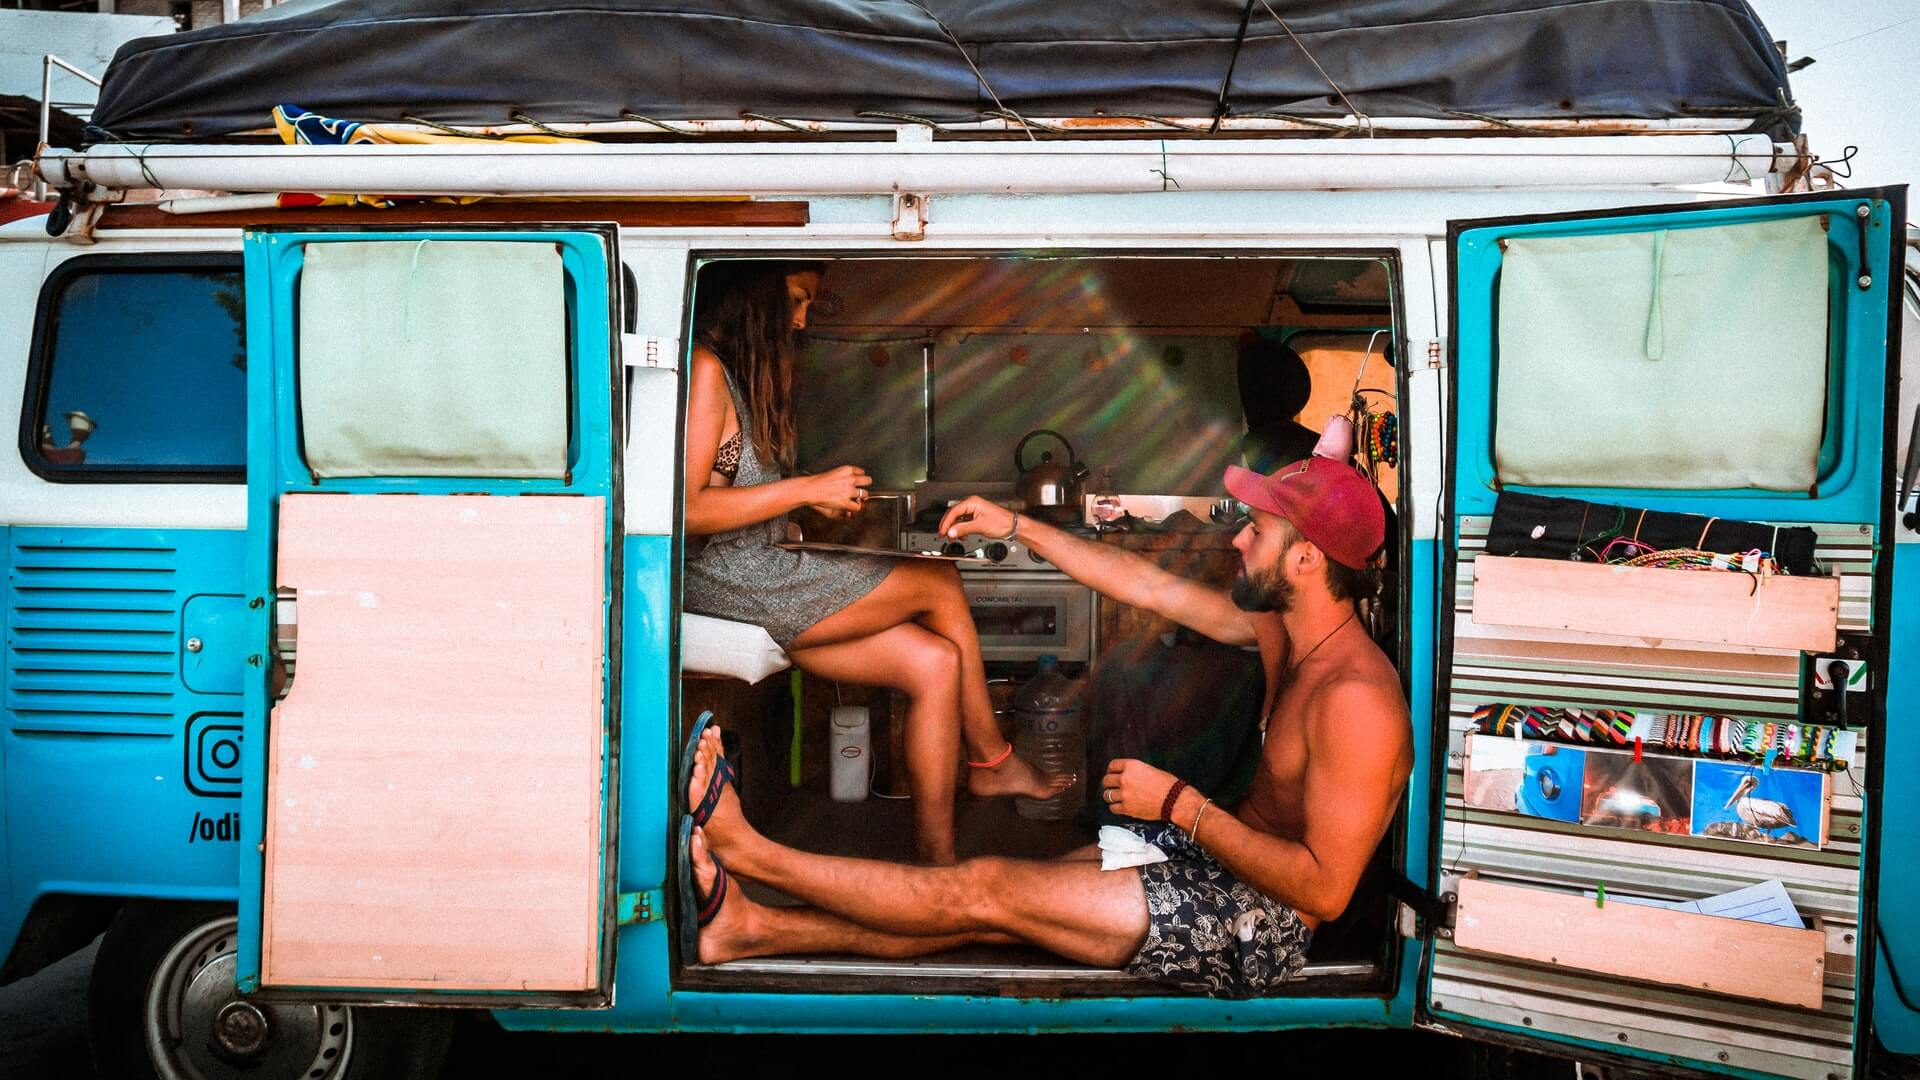 A couple travelling in a van tests the limits of their personal boundaries